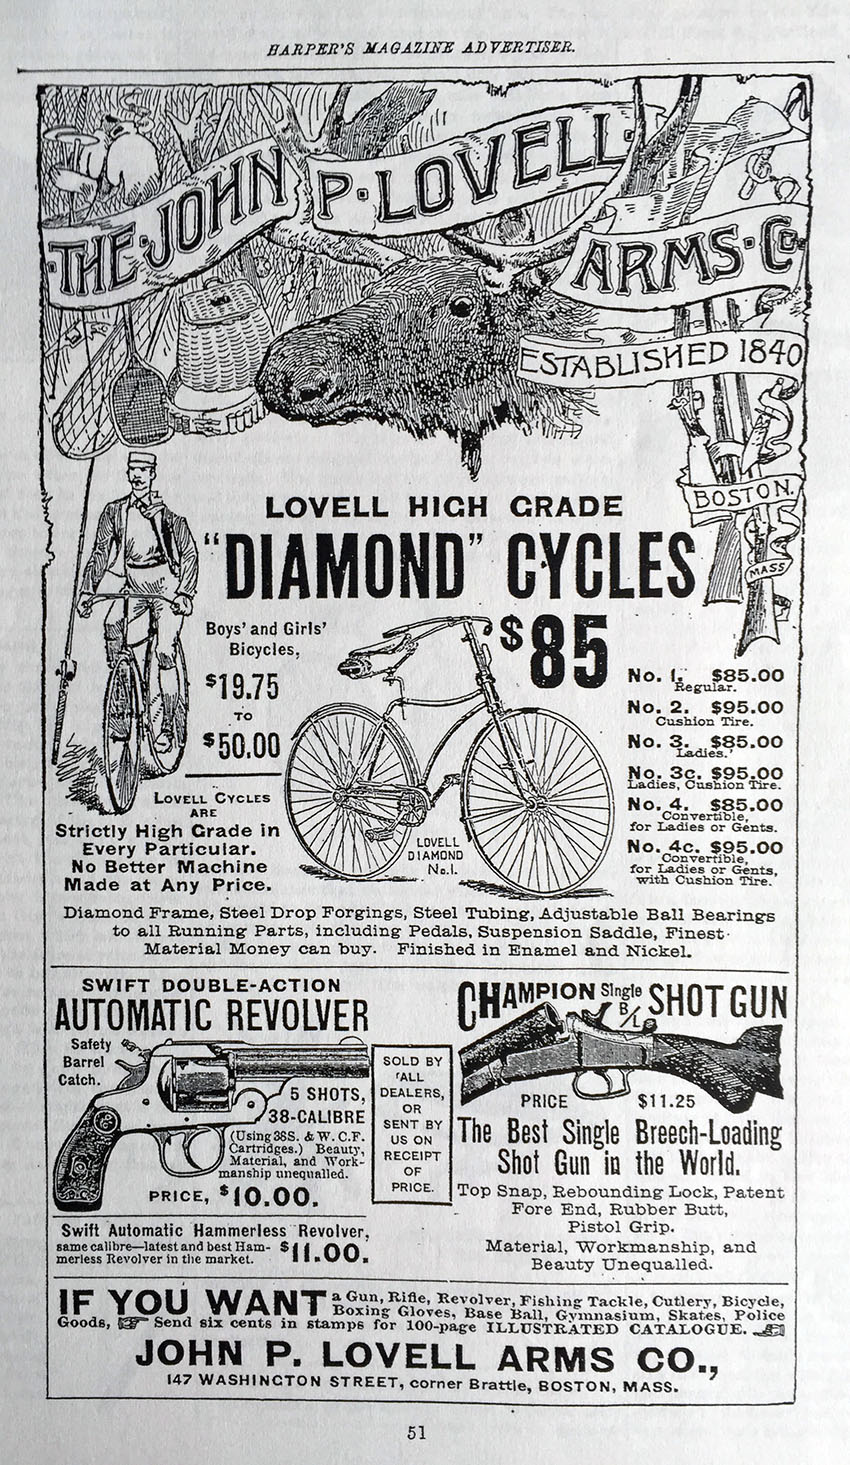 1891 Lovell Diamond 20